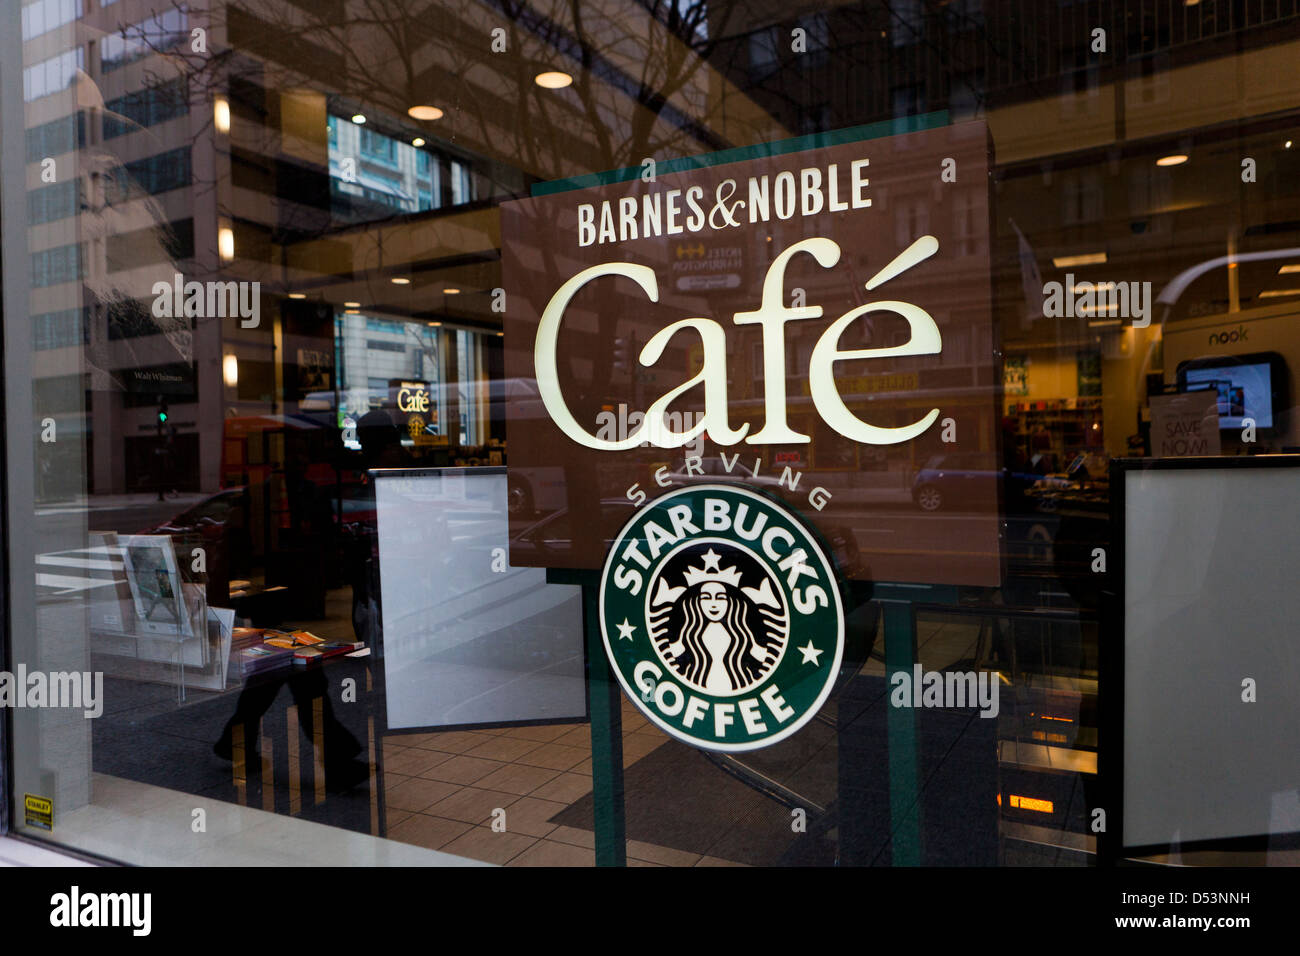 Barnes & Noble Cafe Sign Stock Photo, Royalty Free Image: 54787309 ...